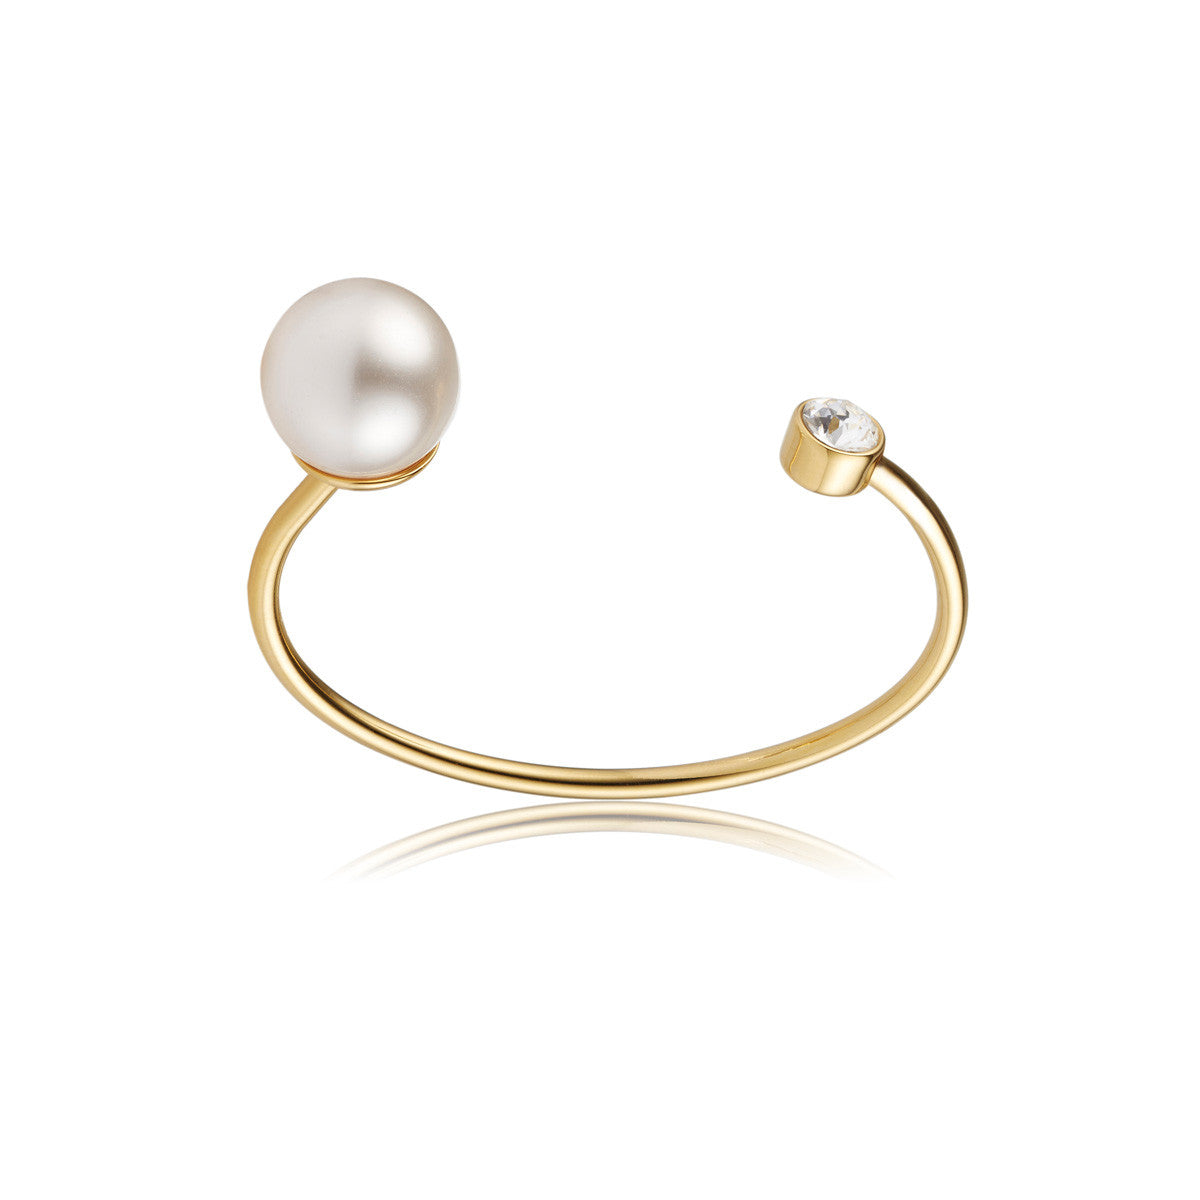 Solid brass, 18K gold plated Crystal Orbis bangle topped with Swarovski® crystal and a faux pearl – front